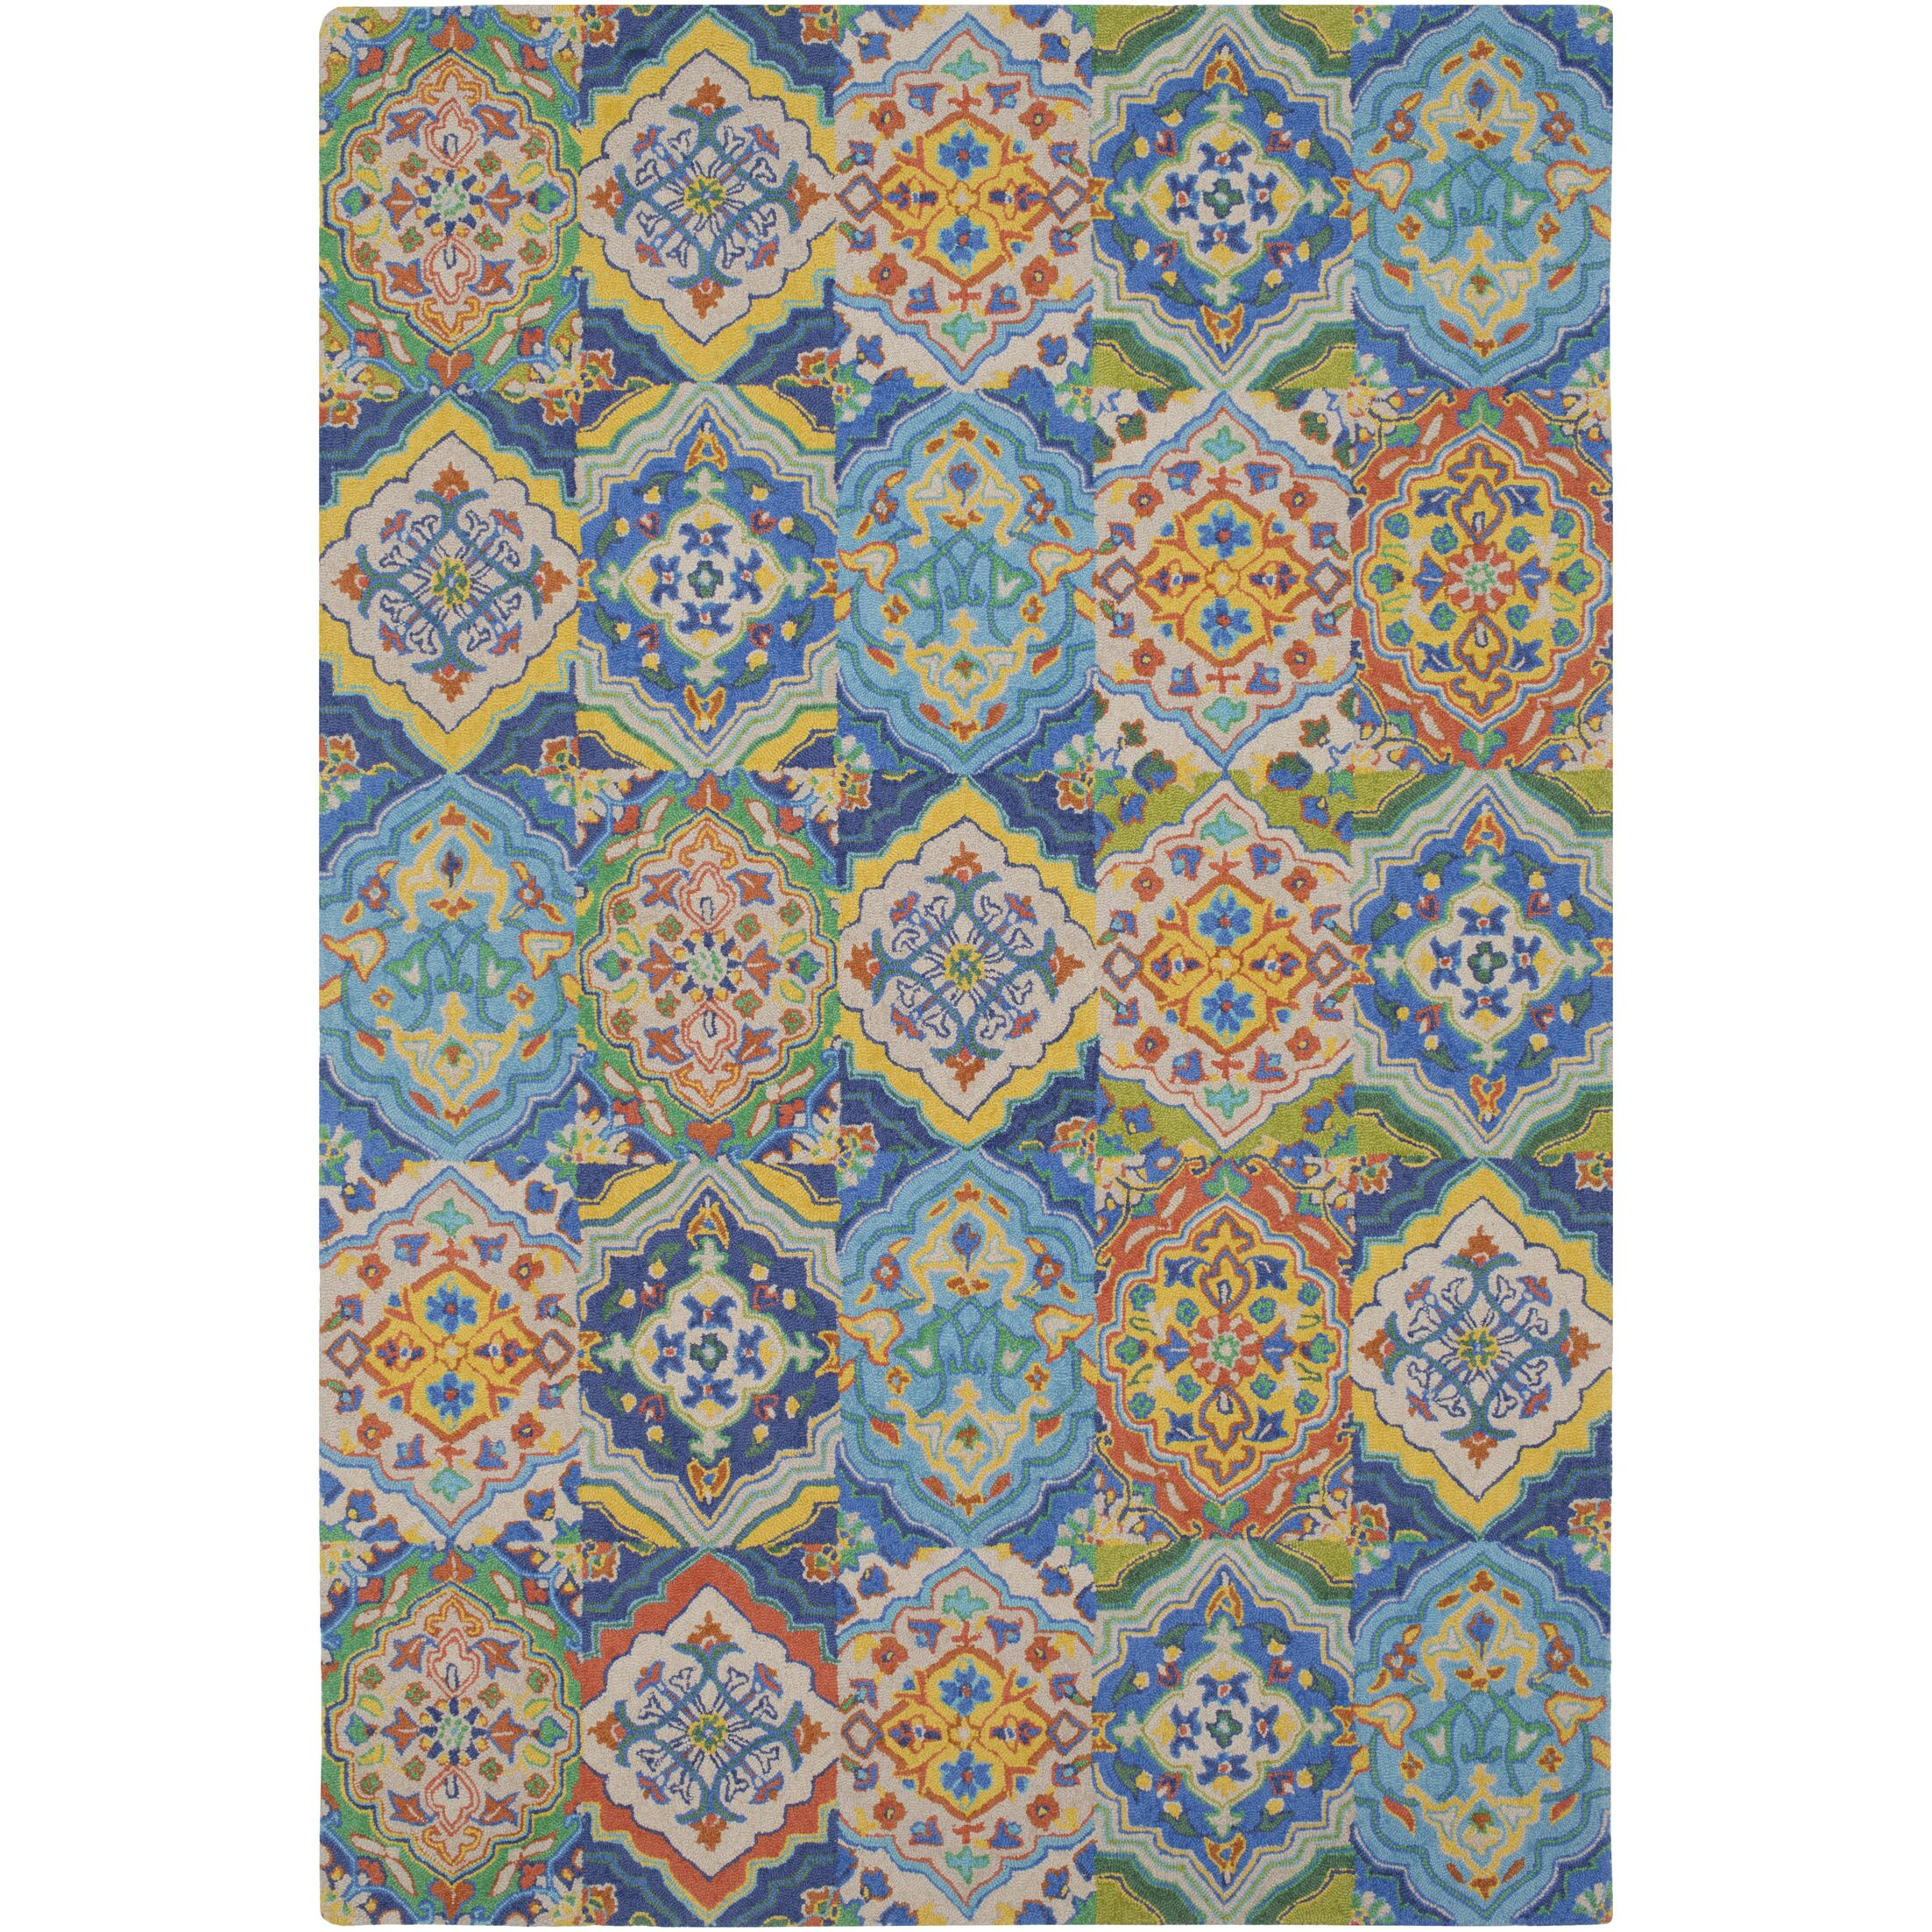 Johannsen Hand-Tufted Khaki/Dark Blue Area Rug Rug Size: Rectangle 2' x 3'